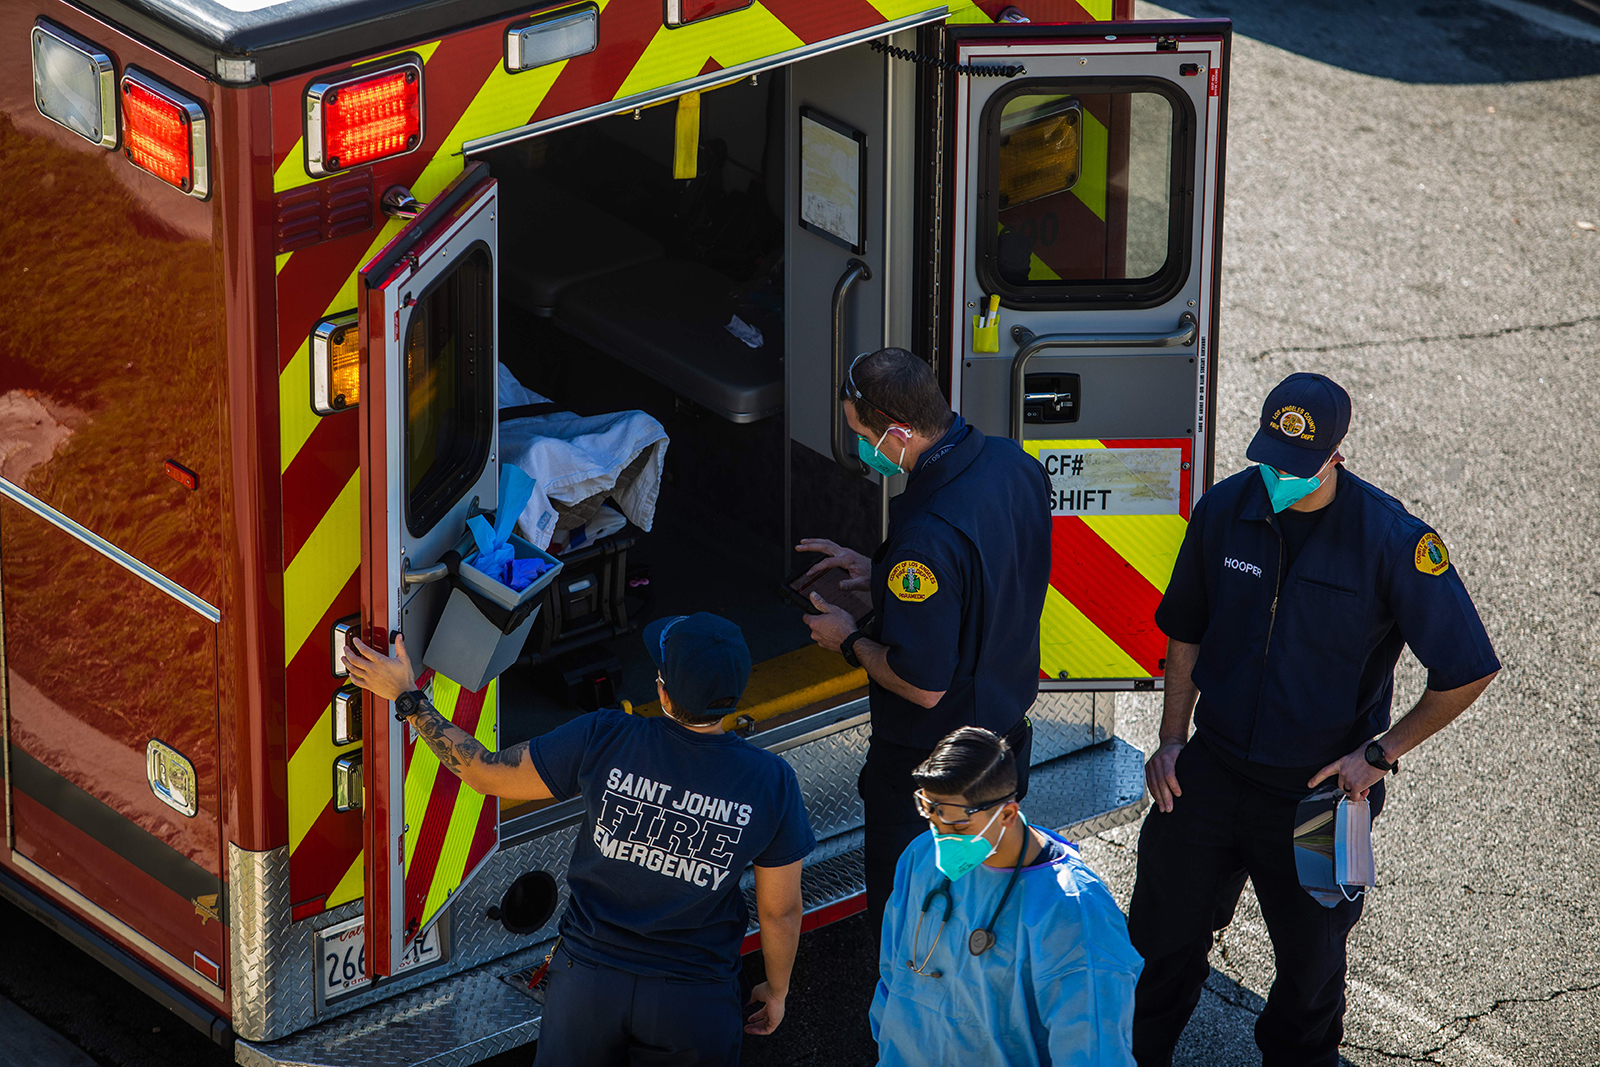 Los Angeles County paramedics load a potential Covid-19 patient into an ambulance before transporting him to a hospital in Hawthorne, California on December 29.